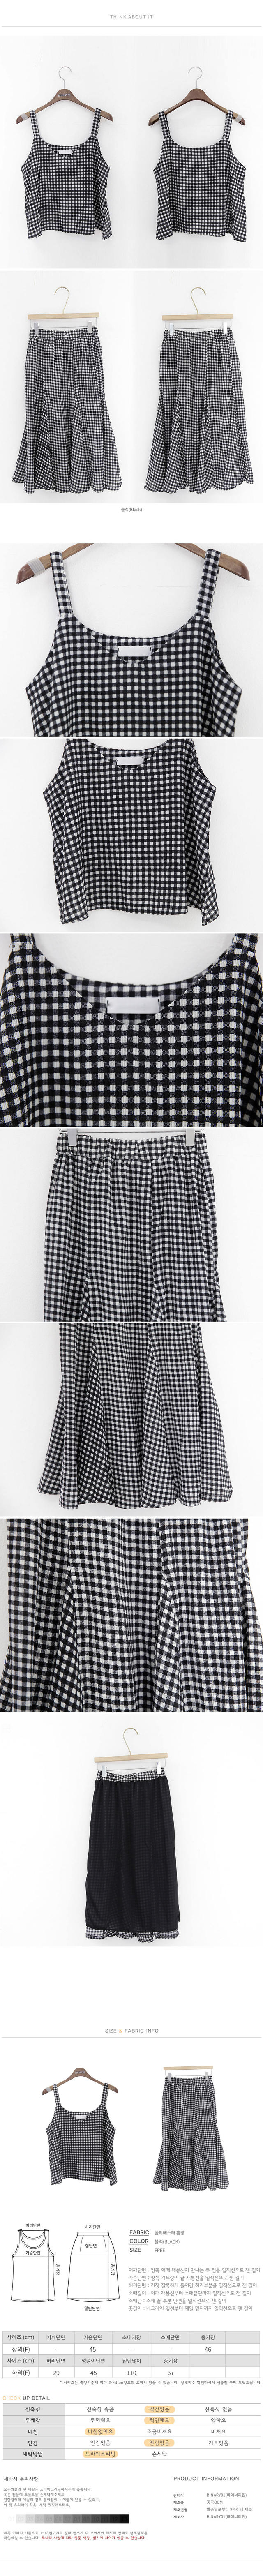 Gingham Paul Check Bustier & Skirt